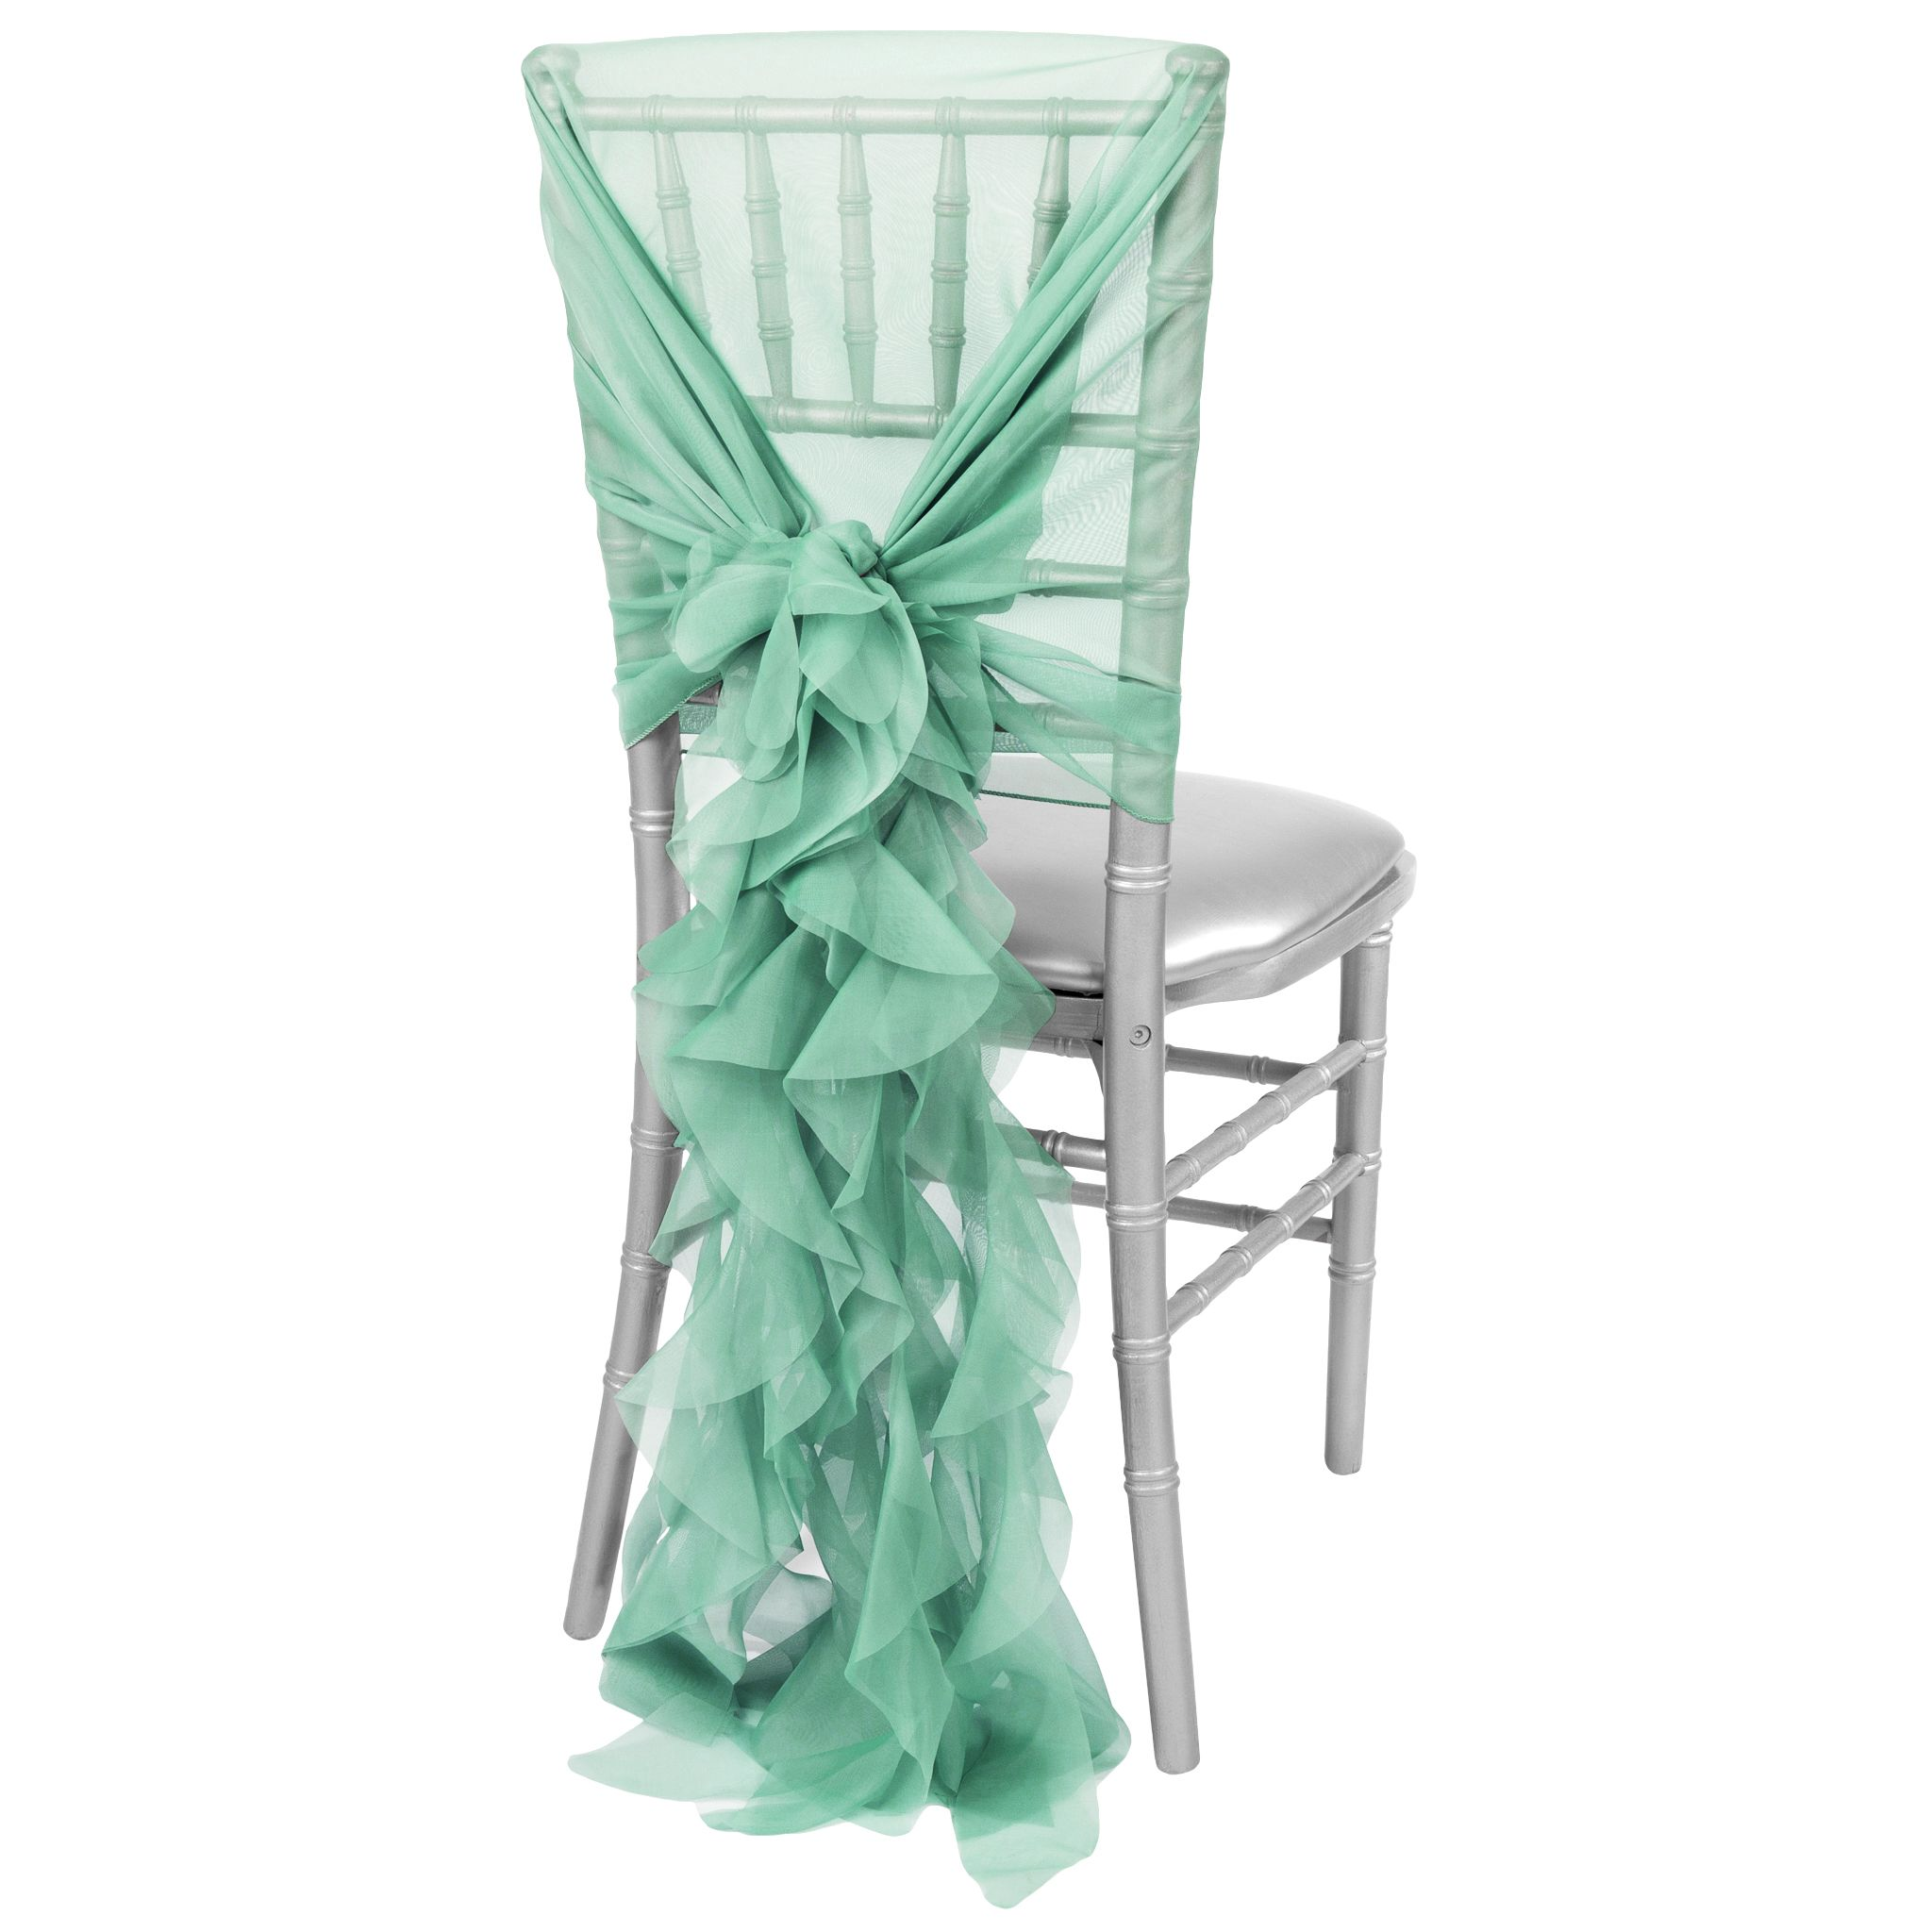 1 Set Of Soft Curly Willow Ruffles Chair Sash & Cap